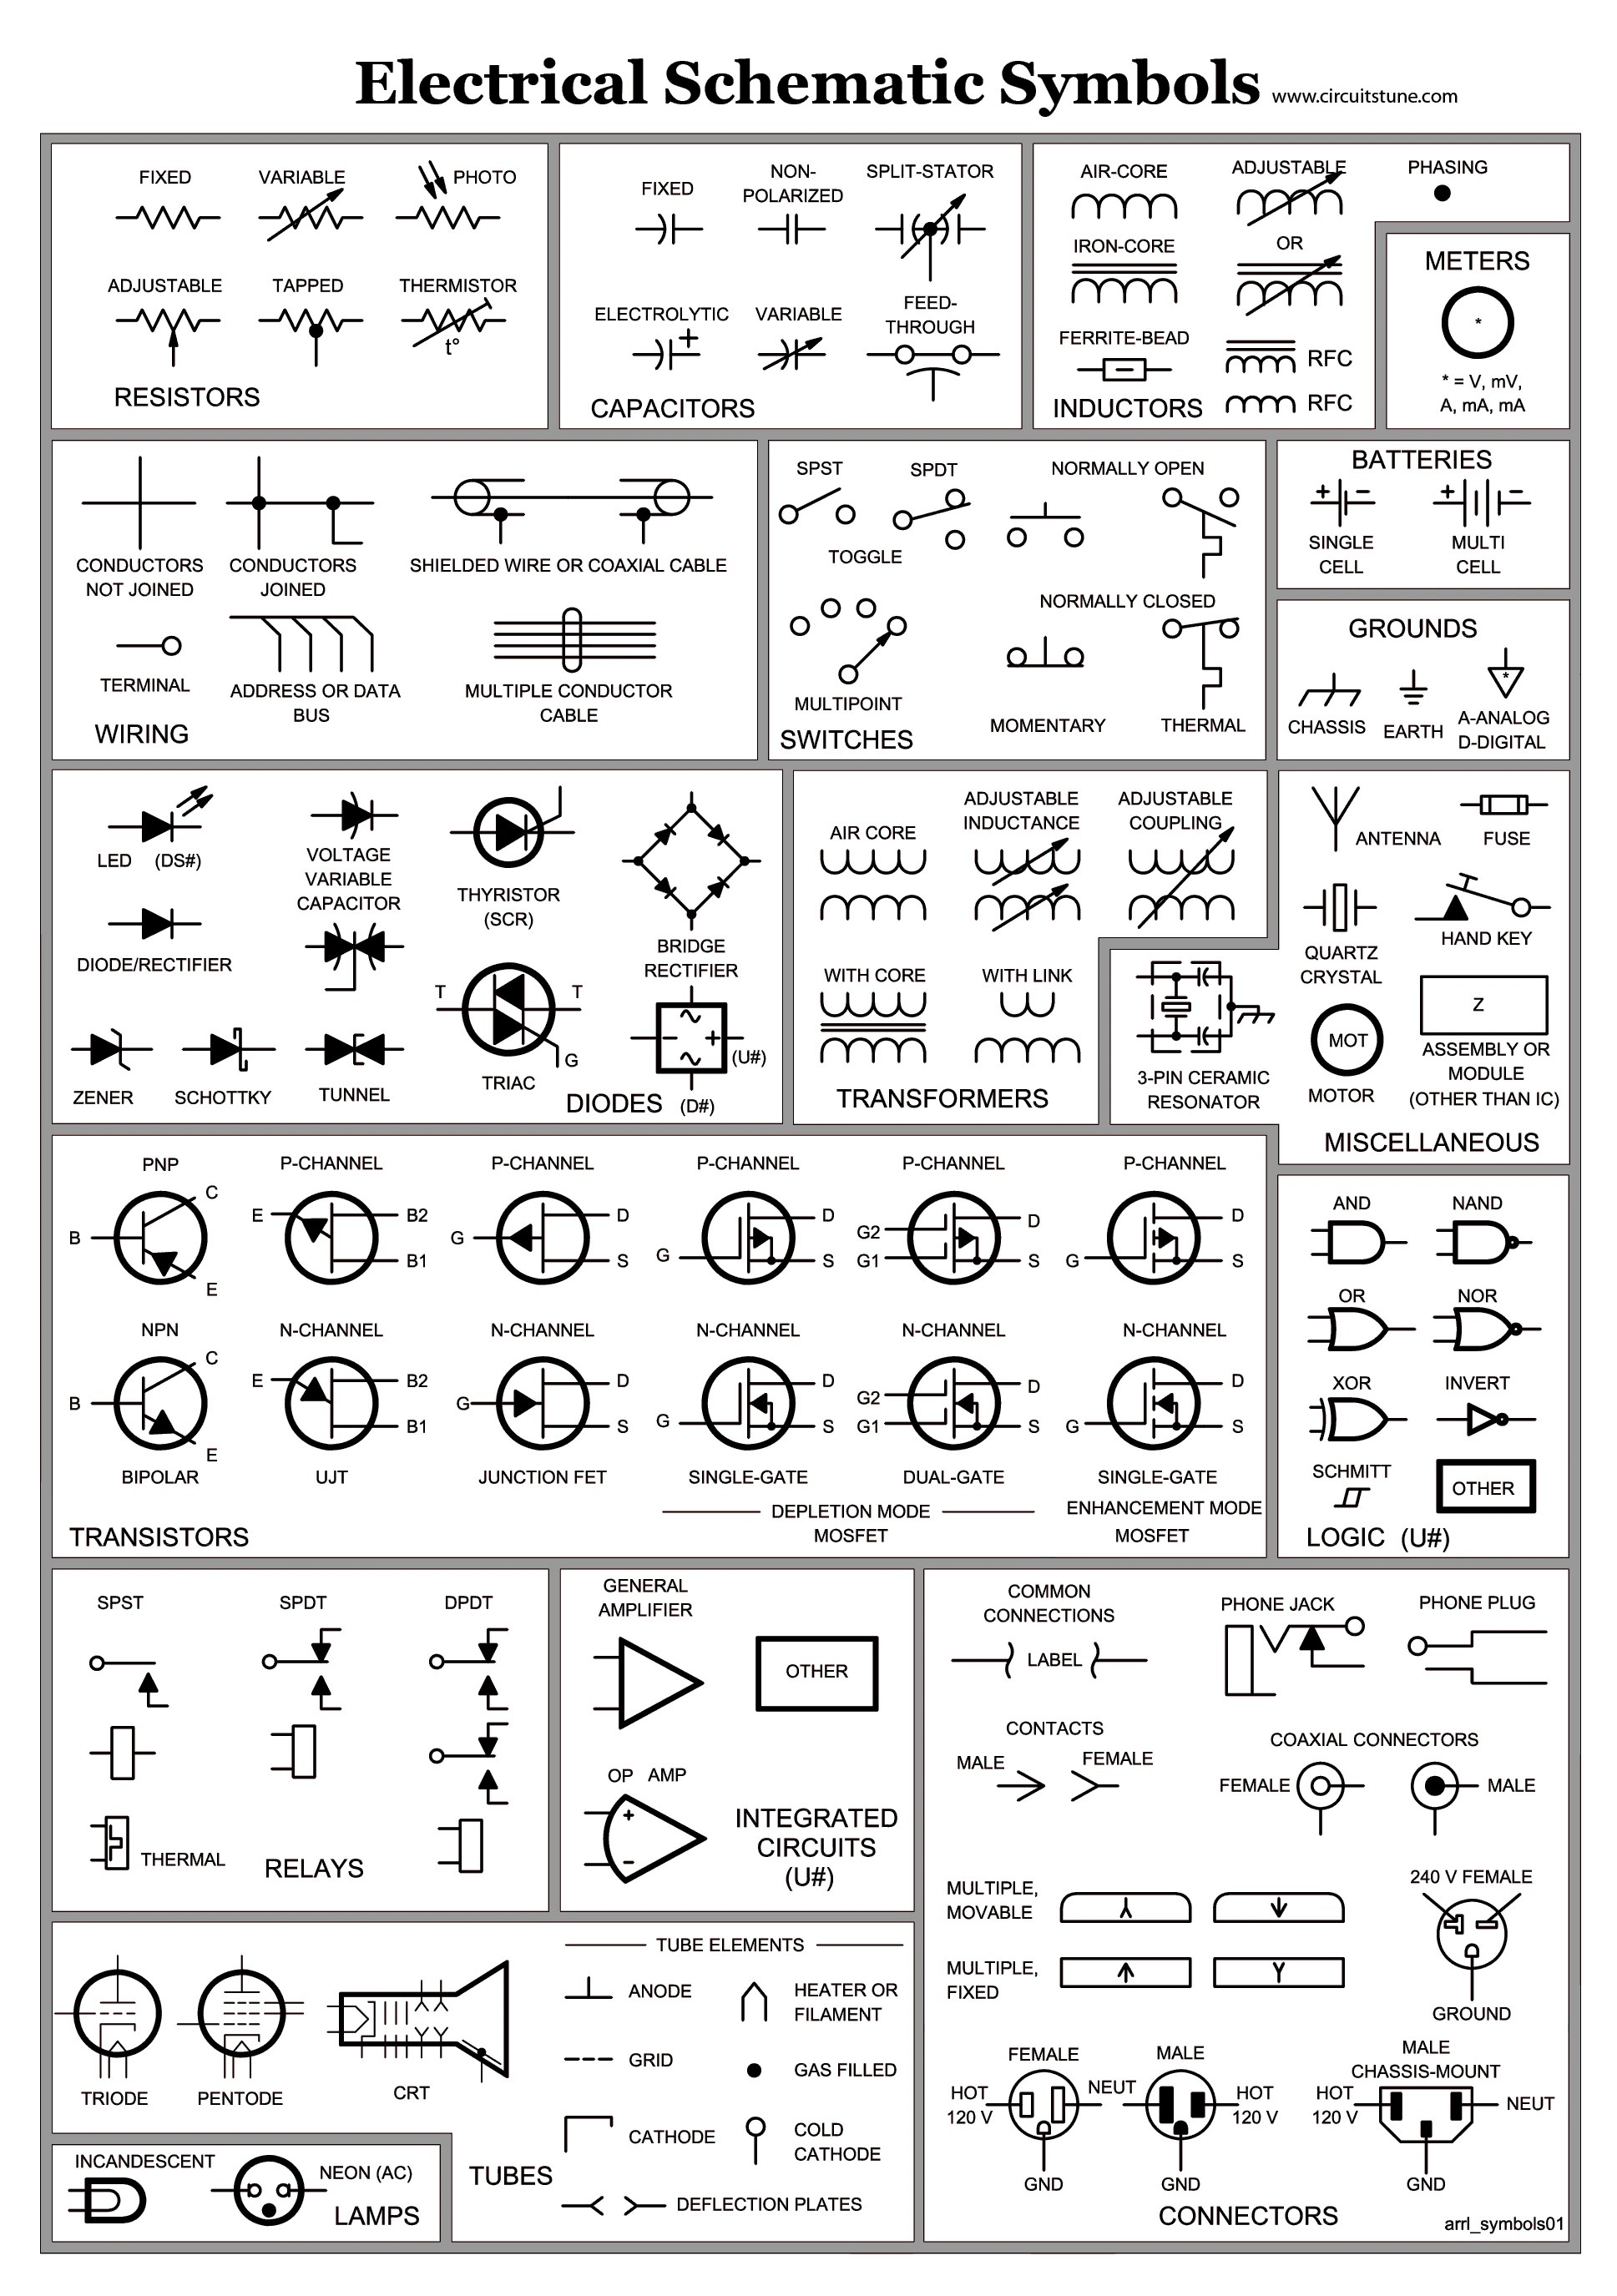 medium resolution of circuit schematic symbols bmet wiki fandom powered by wikia electrical schematic diagram symbols on electrical circuit schematic